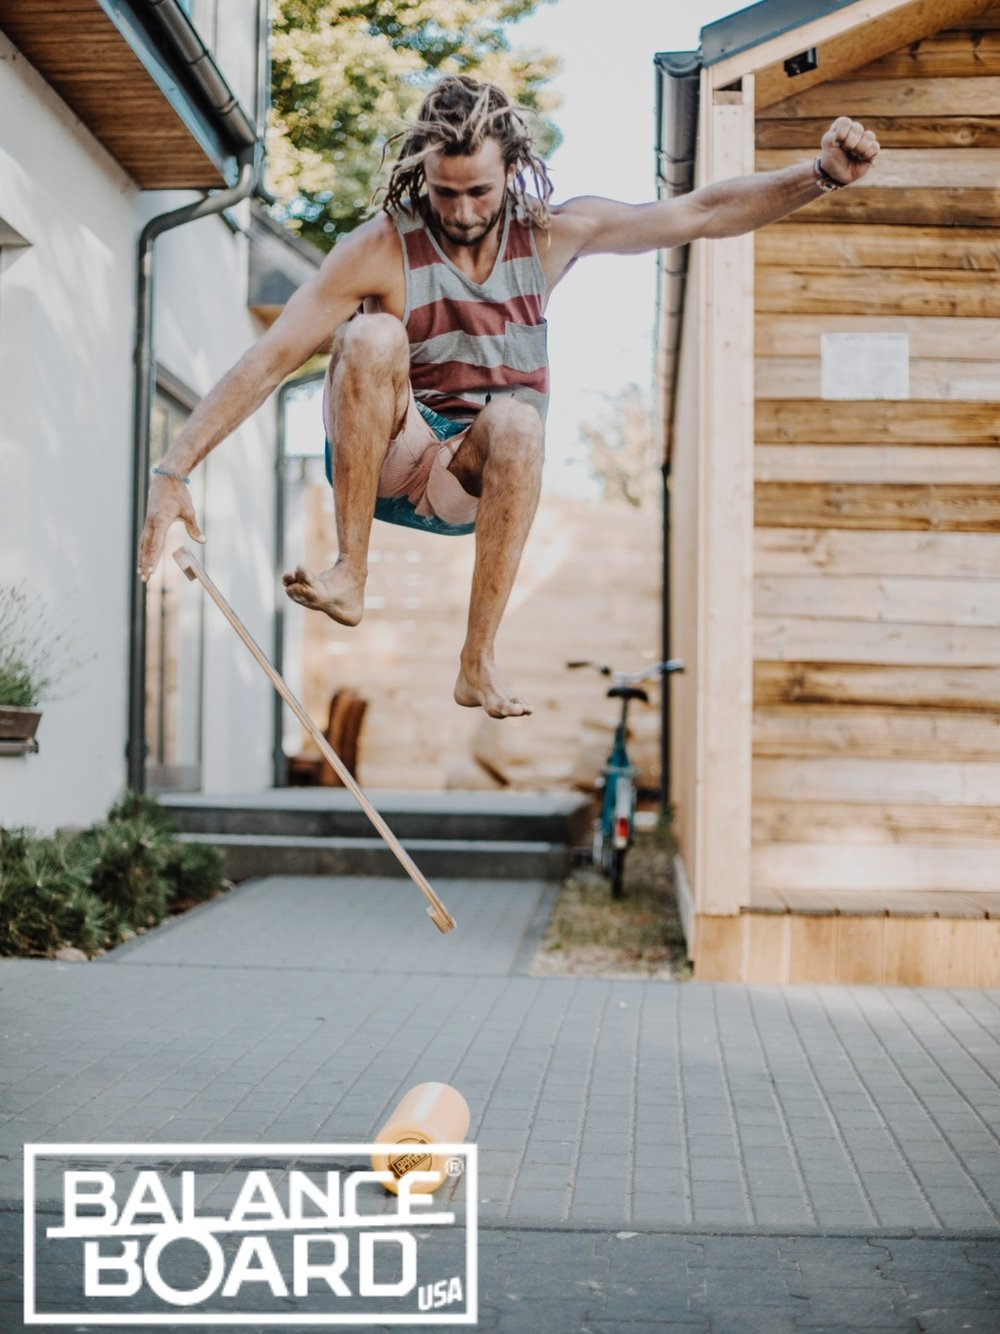 Challenge yourself - No wind? No waves? No problem! Balance board offers a perfect alternative for any board sports such as skateboarding, surfing, snowboarding, wakeboarding and many more! Play with your Balance!If you play any other sports, use it to improve your general balance and core muscle strength. Take it with you anywhere you go!Perfect addition to your daily training routine; combine it with weight lifting, gymnastics, yoga or any other training.